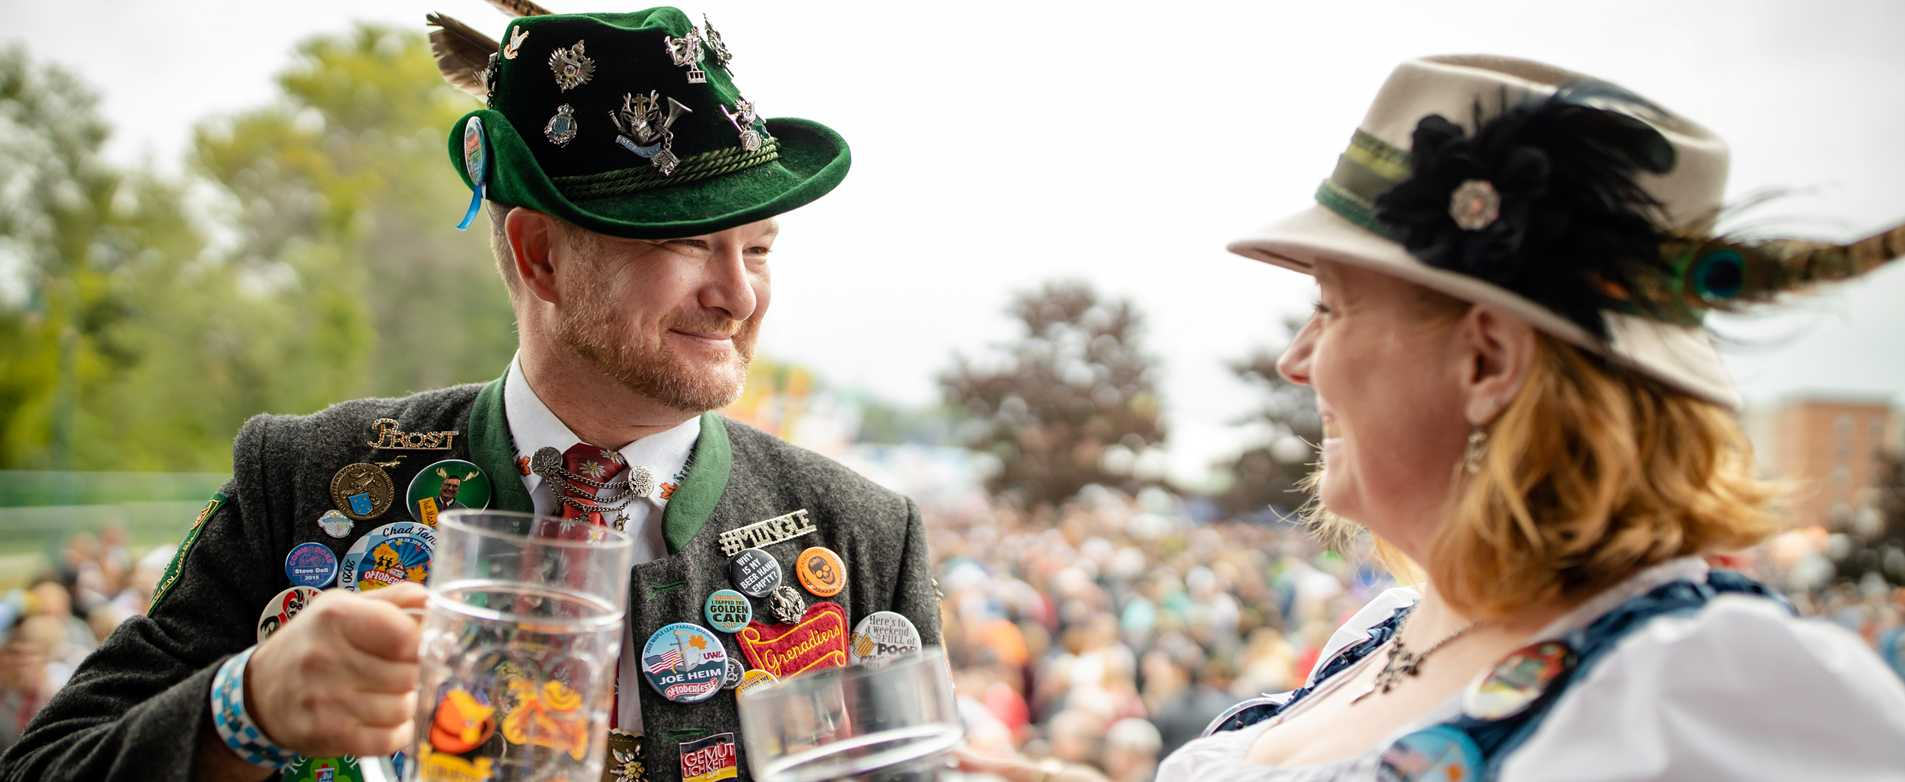 Couple Cheersing at Oktoberfest - Events